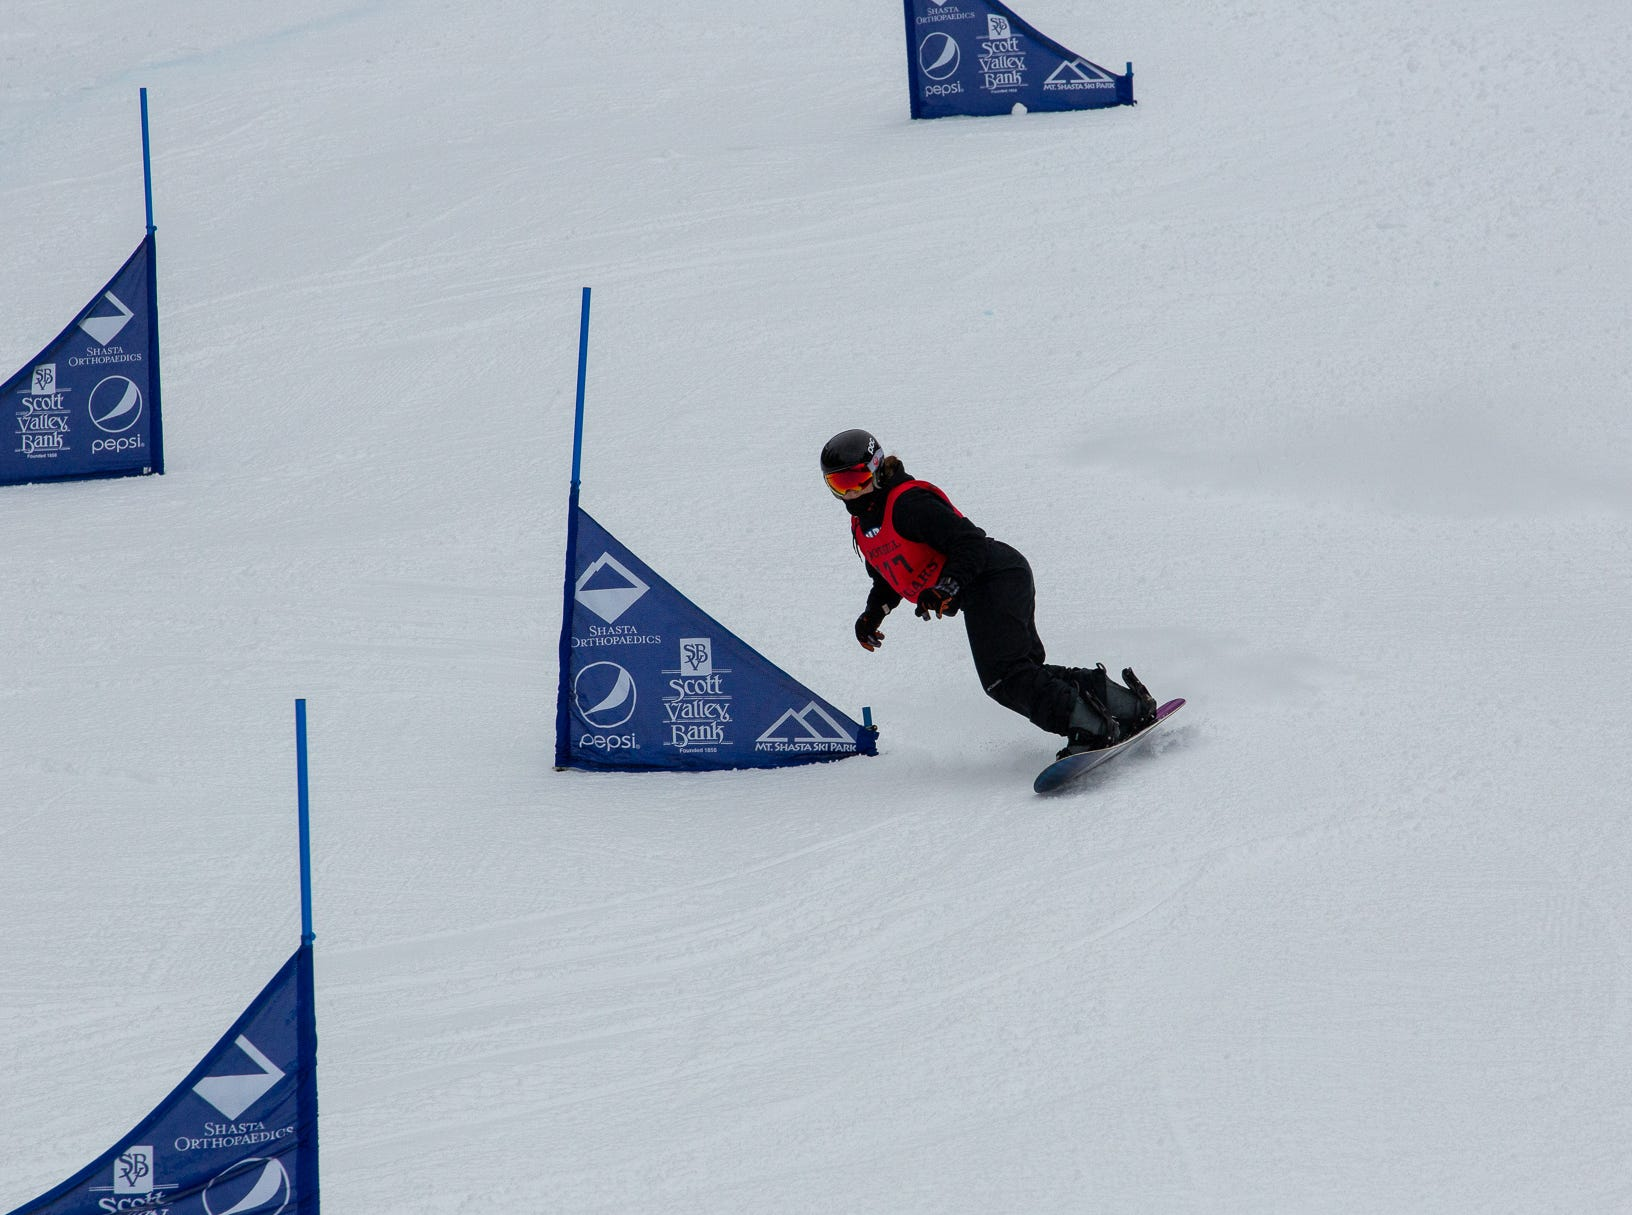 Foothill's Citriana Coulter competes in the girls slalom at the 2019 snowboard state championships held March 4-5 at Mt. Shasta Ski Park.